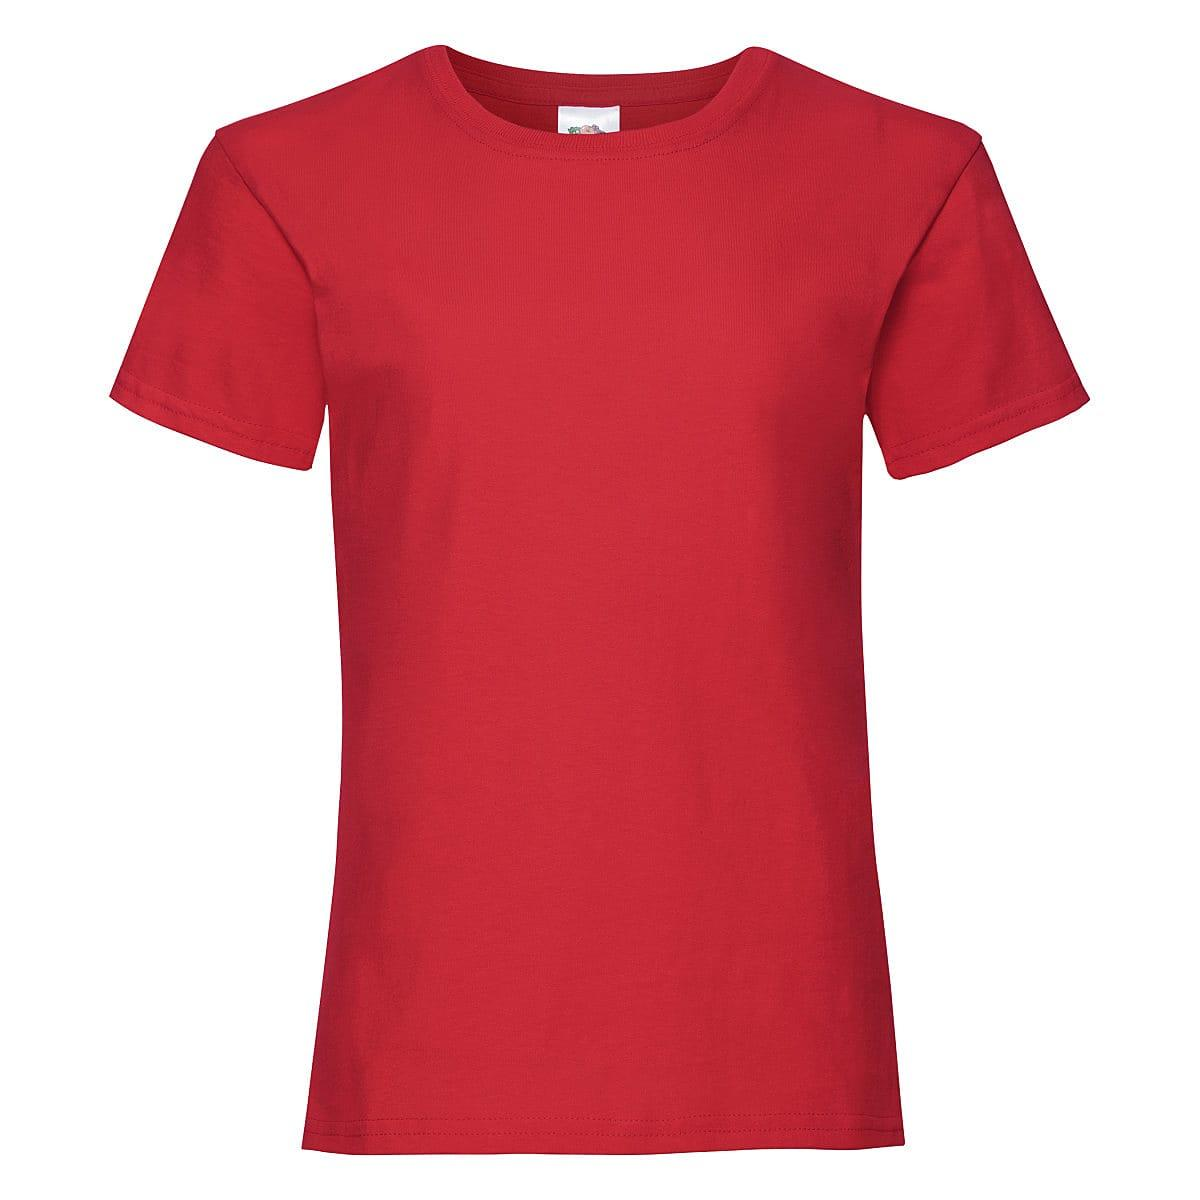 Fruit Of The Loom Girls Valueweight T-Shirt in Red (Product Code: 61005)